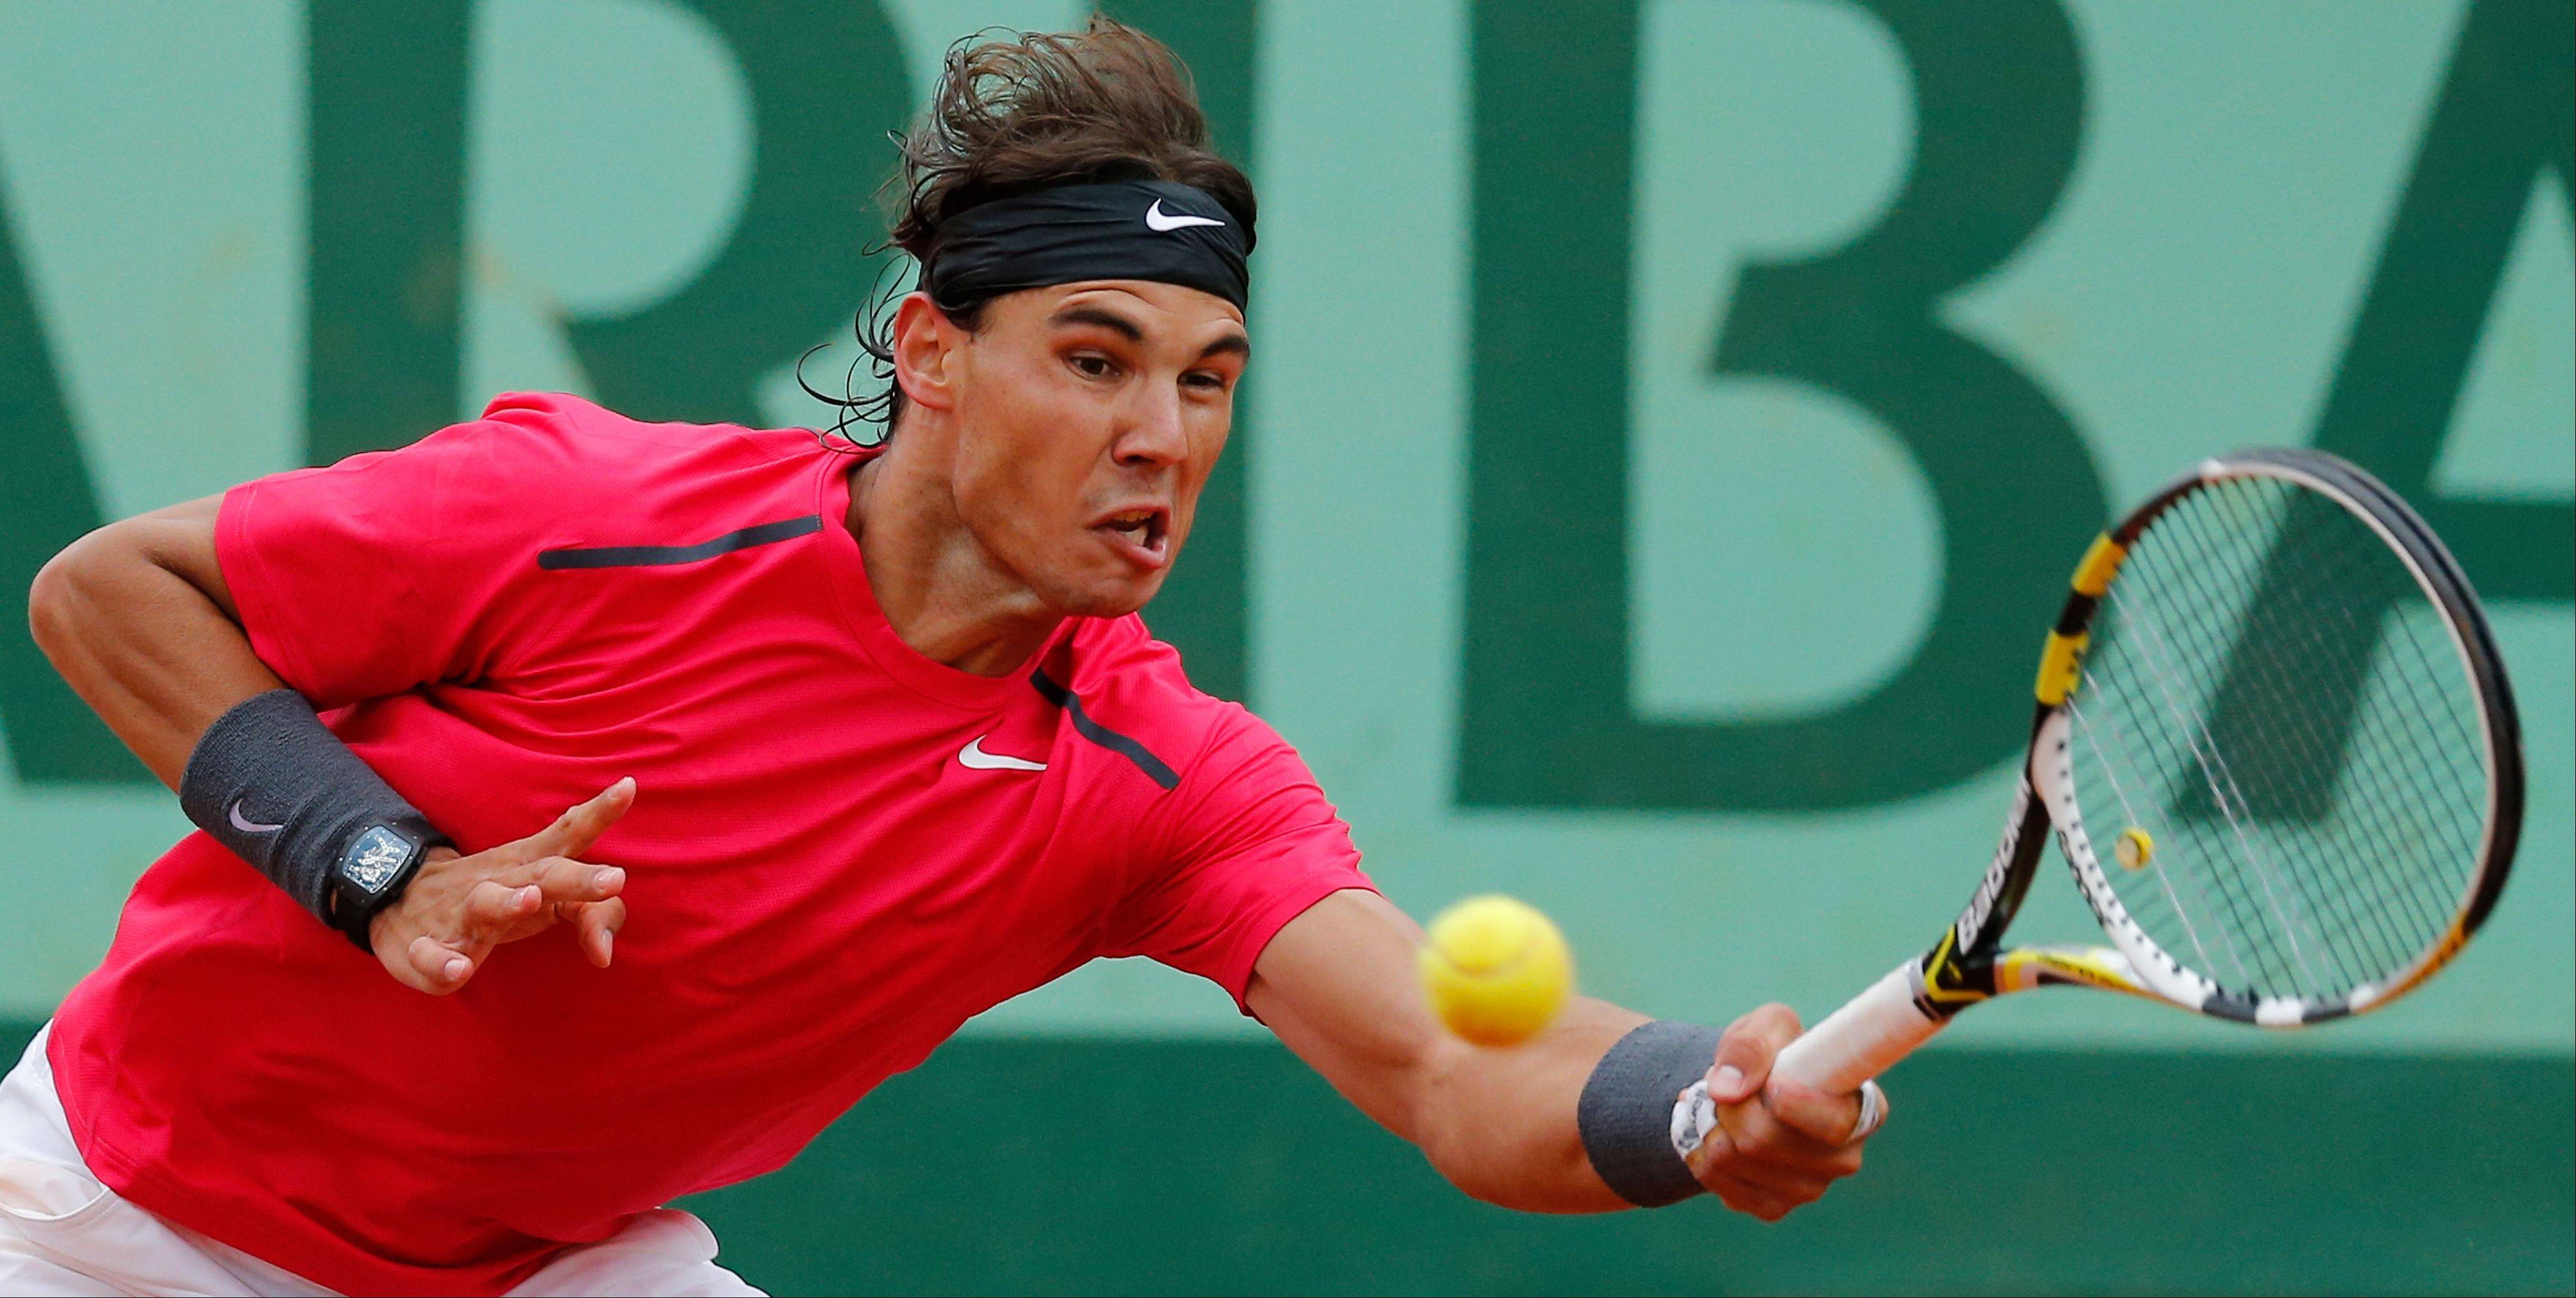 Rafael Nadal of Spain returns in his fourth round match Monday against Juan Monaco of Argentina at the French Open tennis tournament in Roland Garros stadium in Paris. Nadal won in three sets 6-2, 6-0, 6-0, and will go on the play the quarter finals.